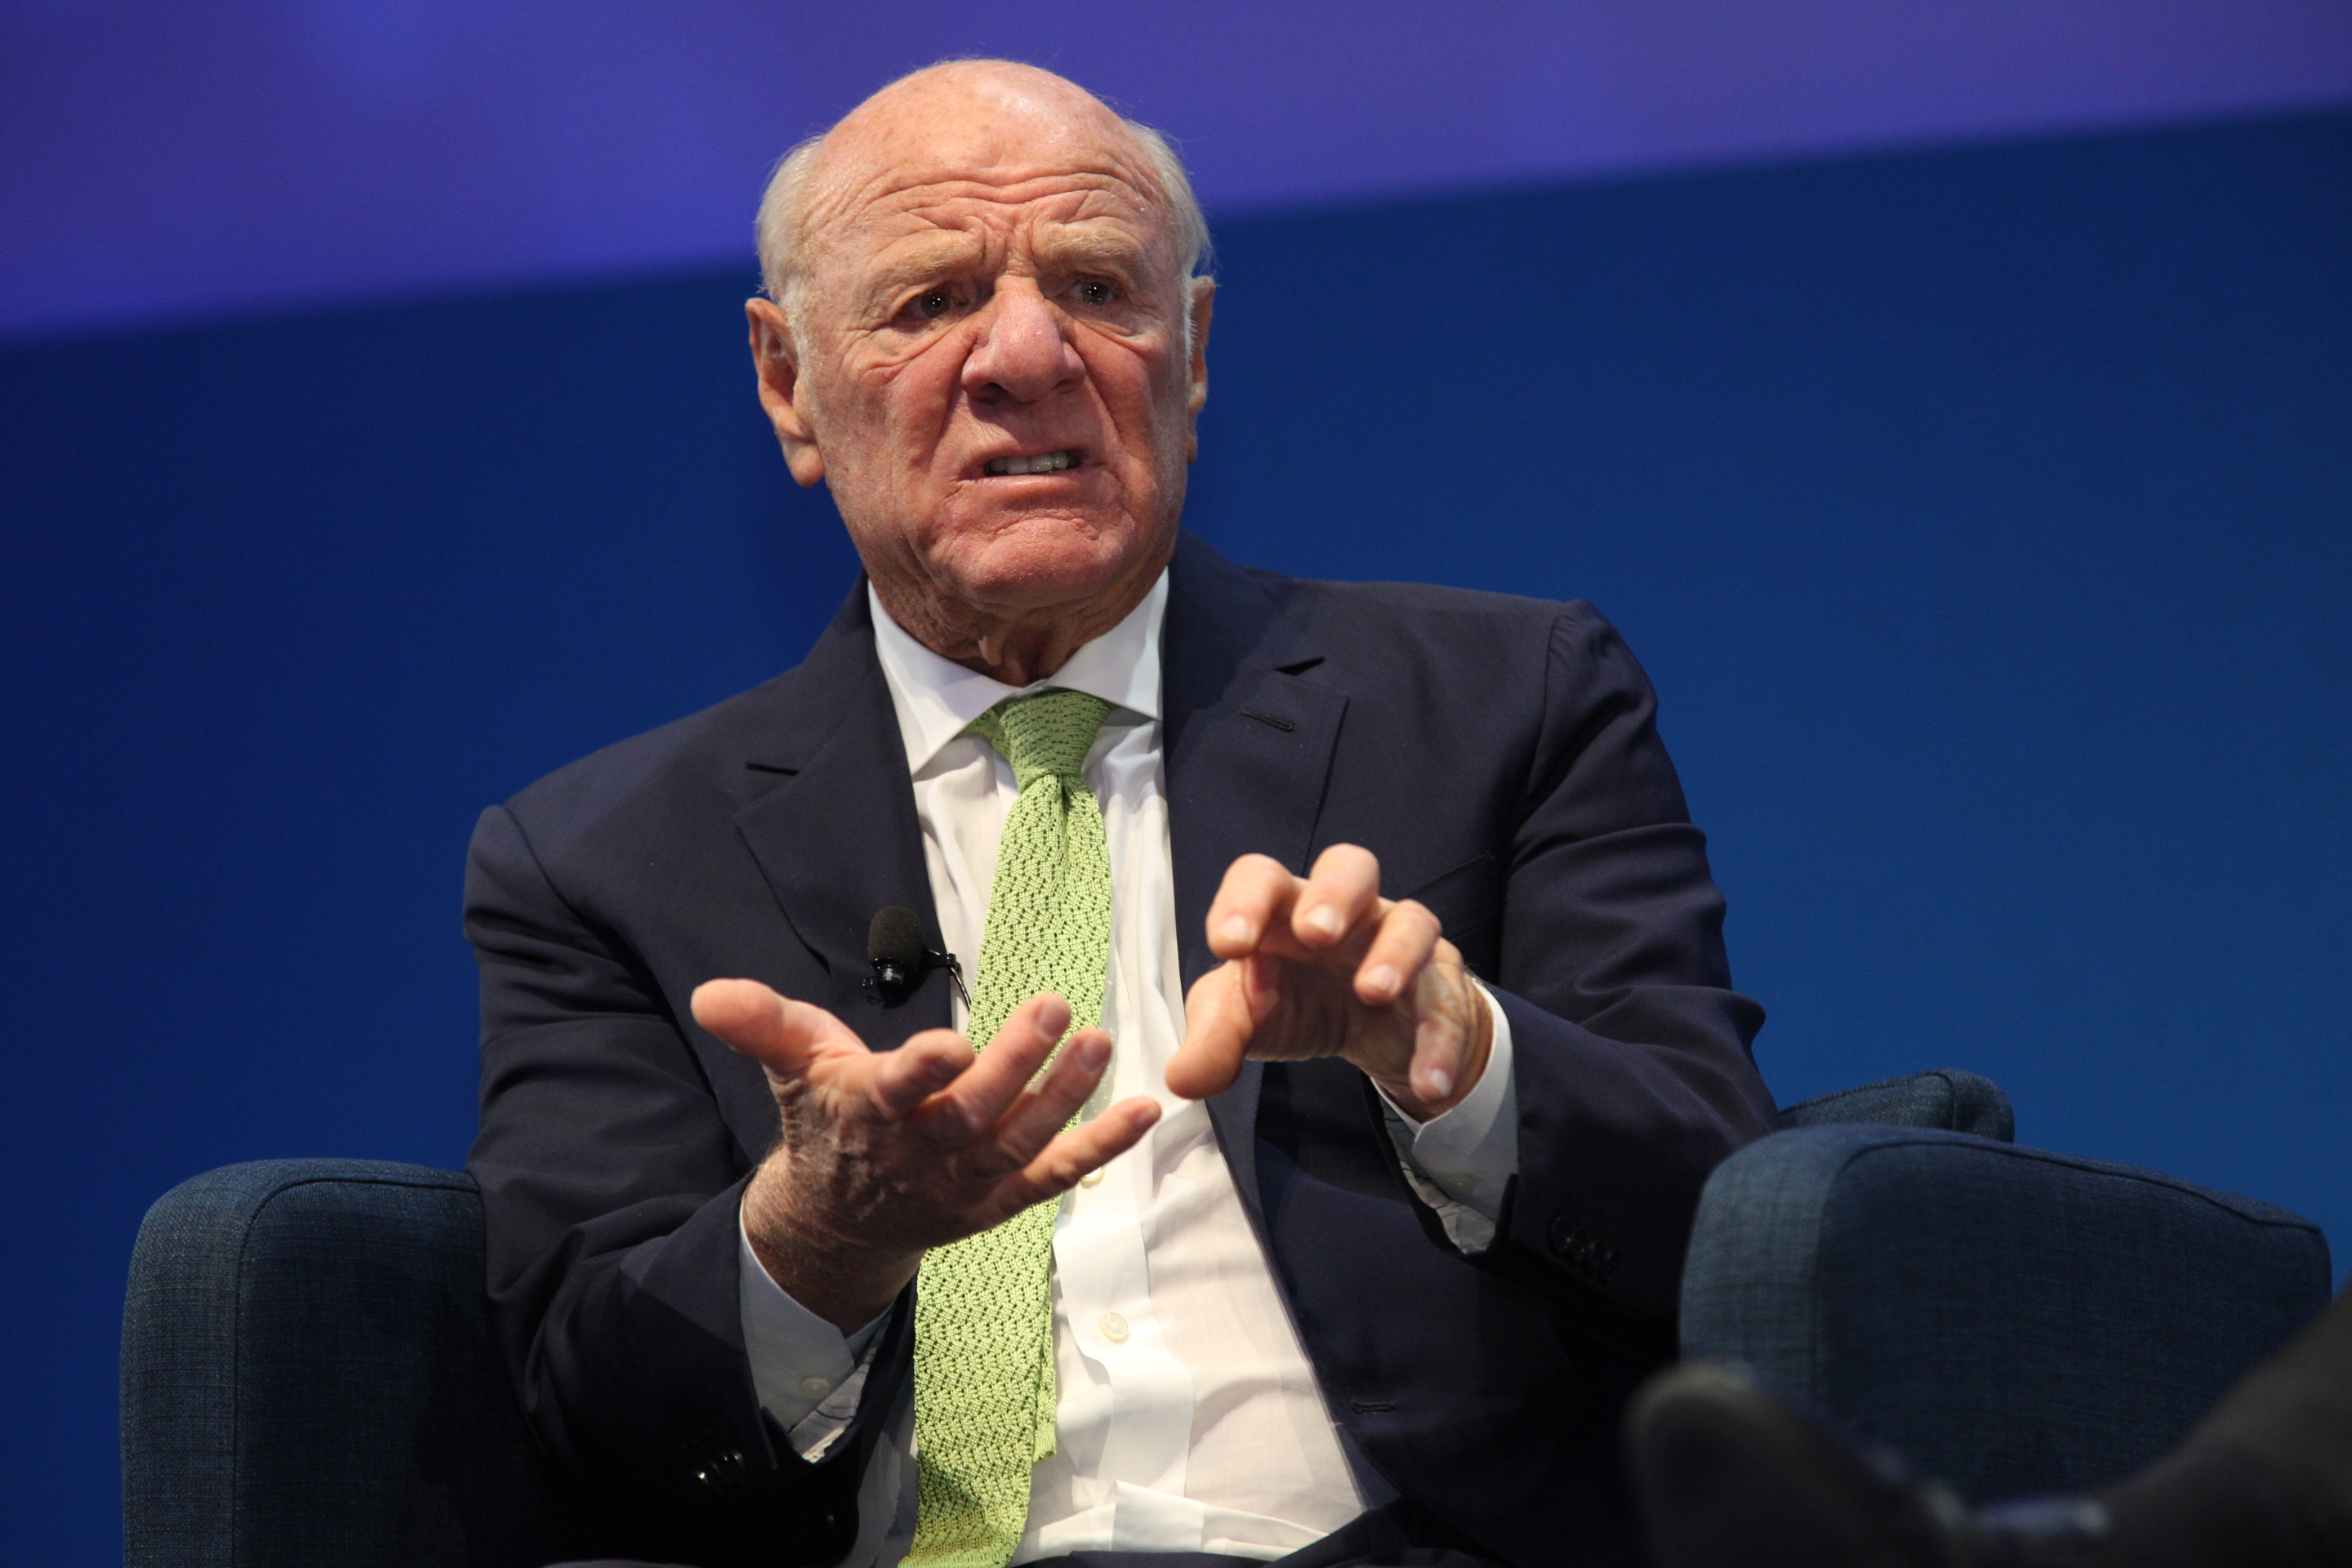 Barry Diller, Chairman and Senior Executive of IAC & Expedia in 2016